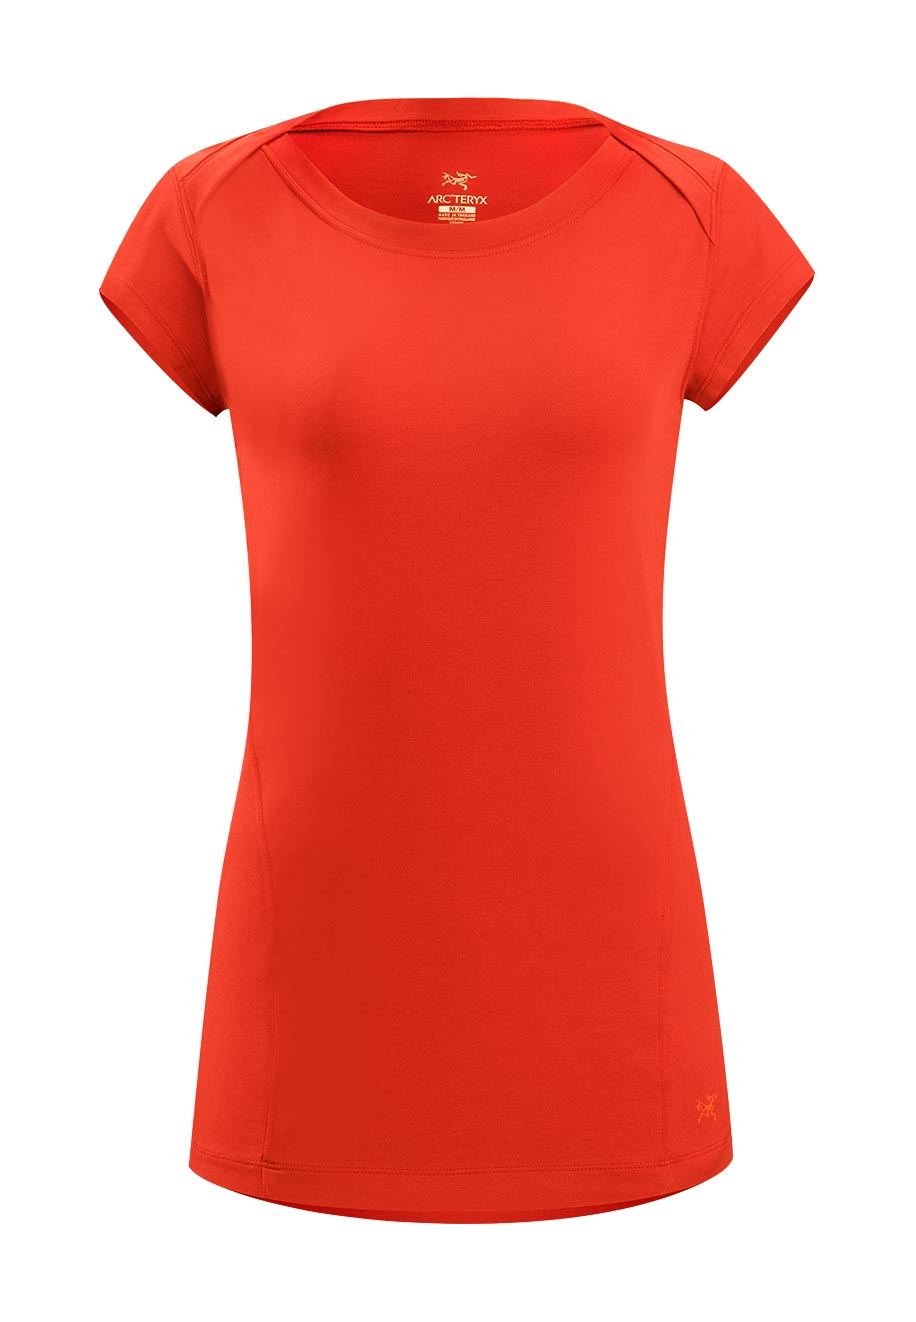 Arcteryx Women Autumn Coral Motive Boatneck SS